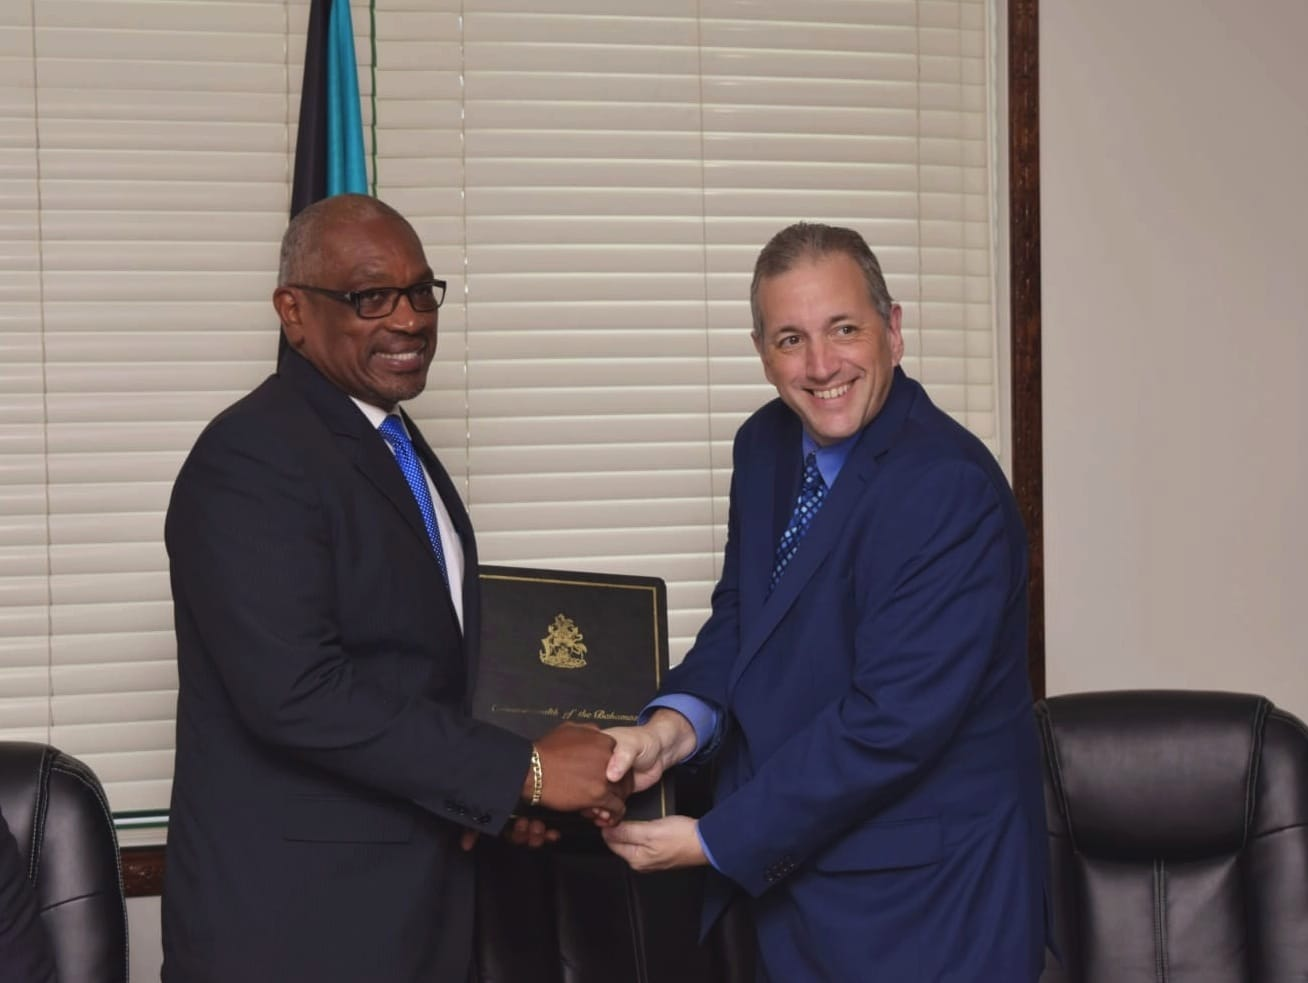 Govt. signs Heads of Agreement for new medical university in Grand Bahama